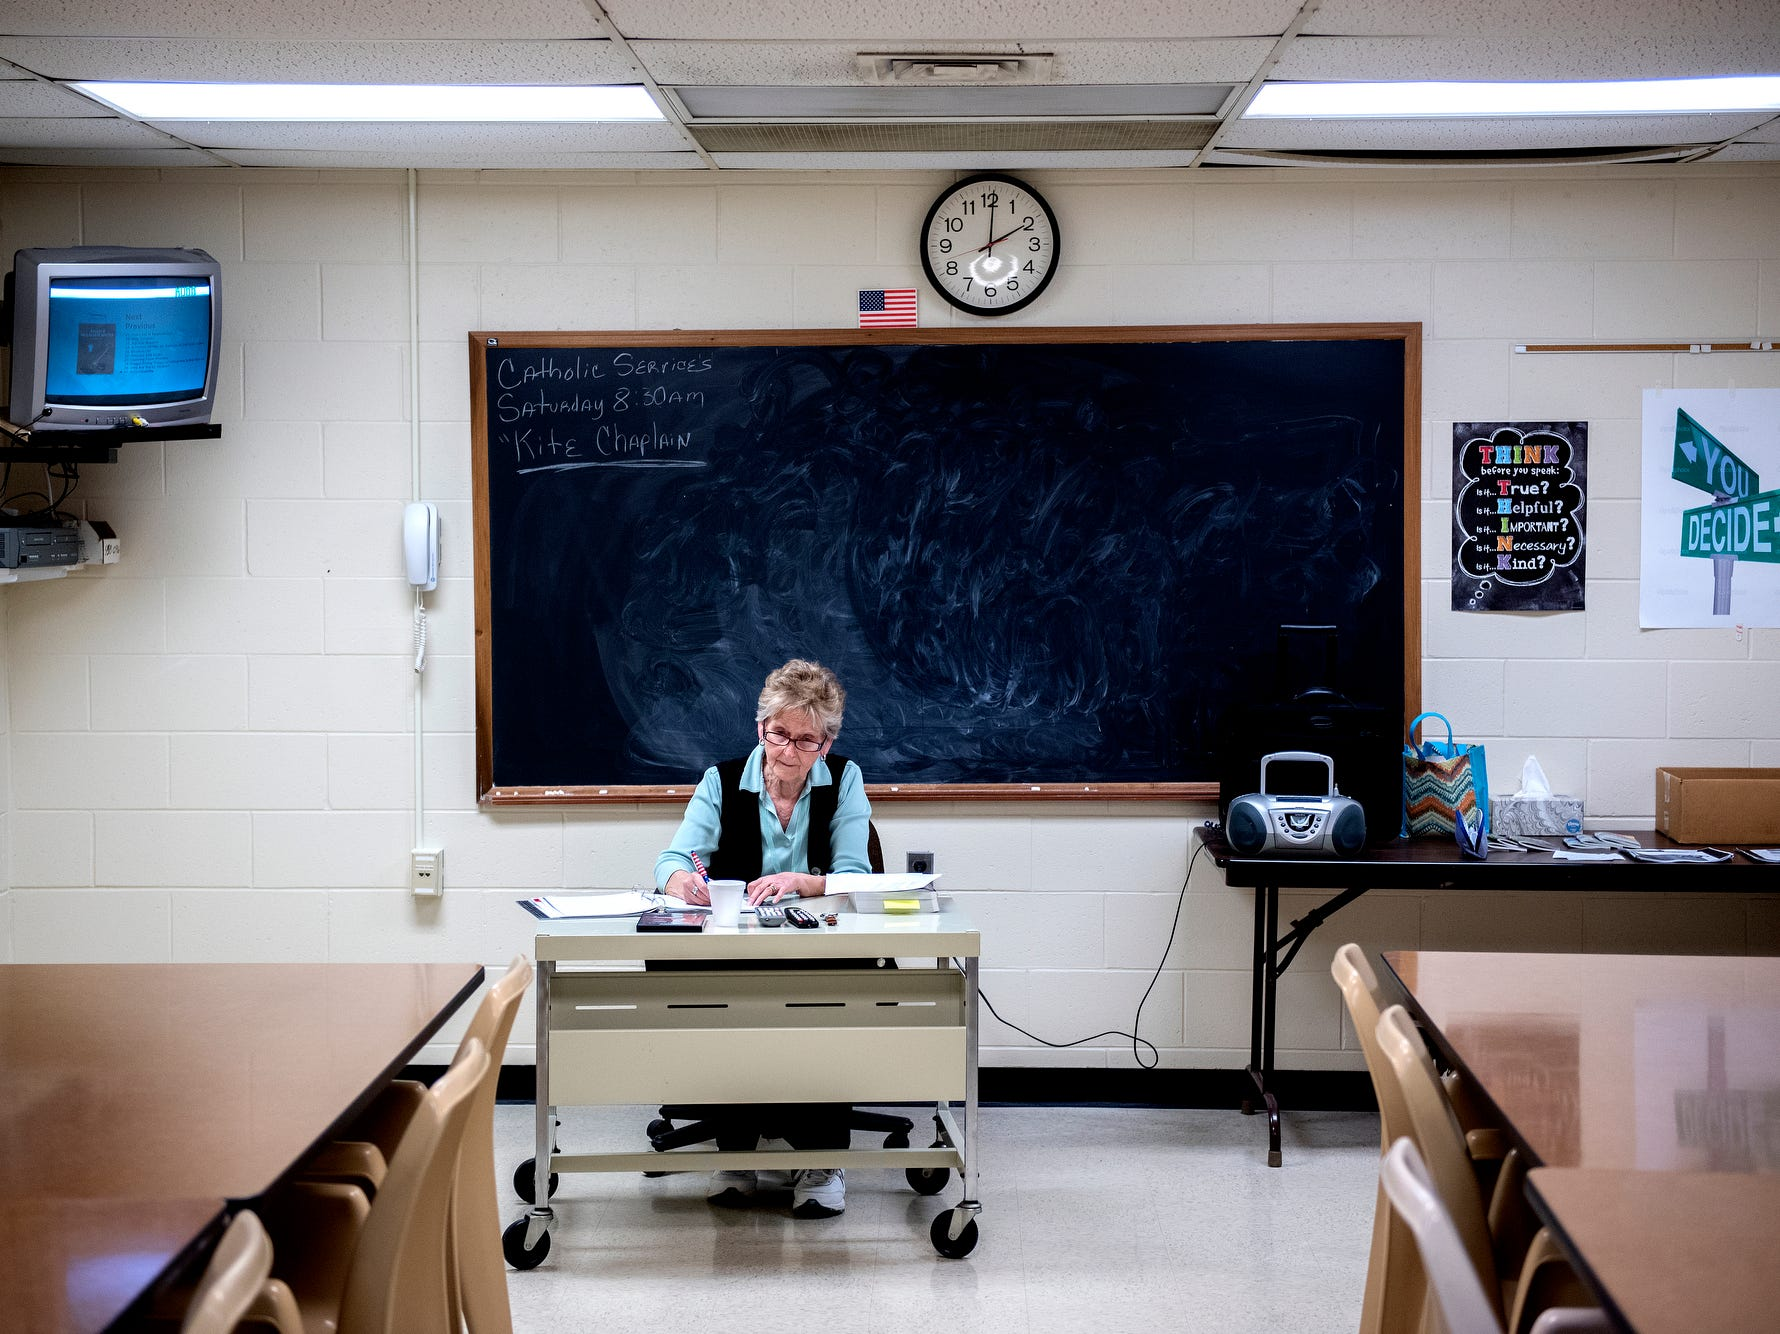 Jail volunteer Carol Ann Wilkinson works in her classroom during a tour of the Ingham County Jail on Tuesday, April 24, 2018, in Mason. A focus on increasing the jail's programs for inmates is included as a bonus to the proposed new jail.